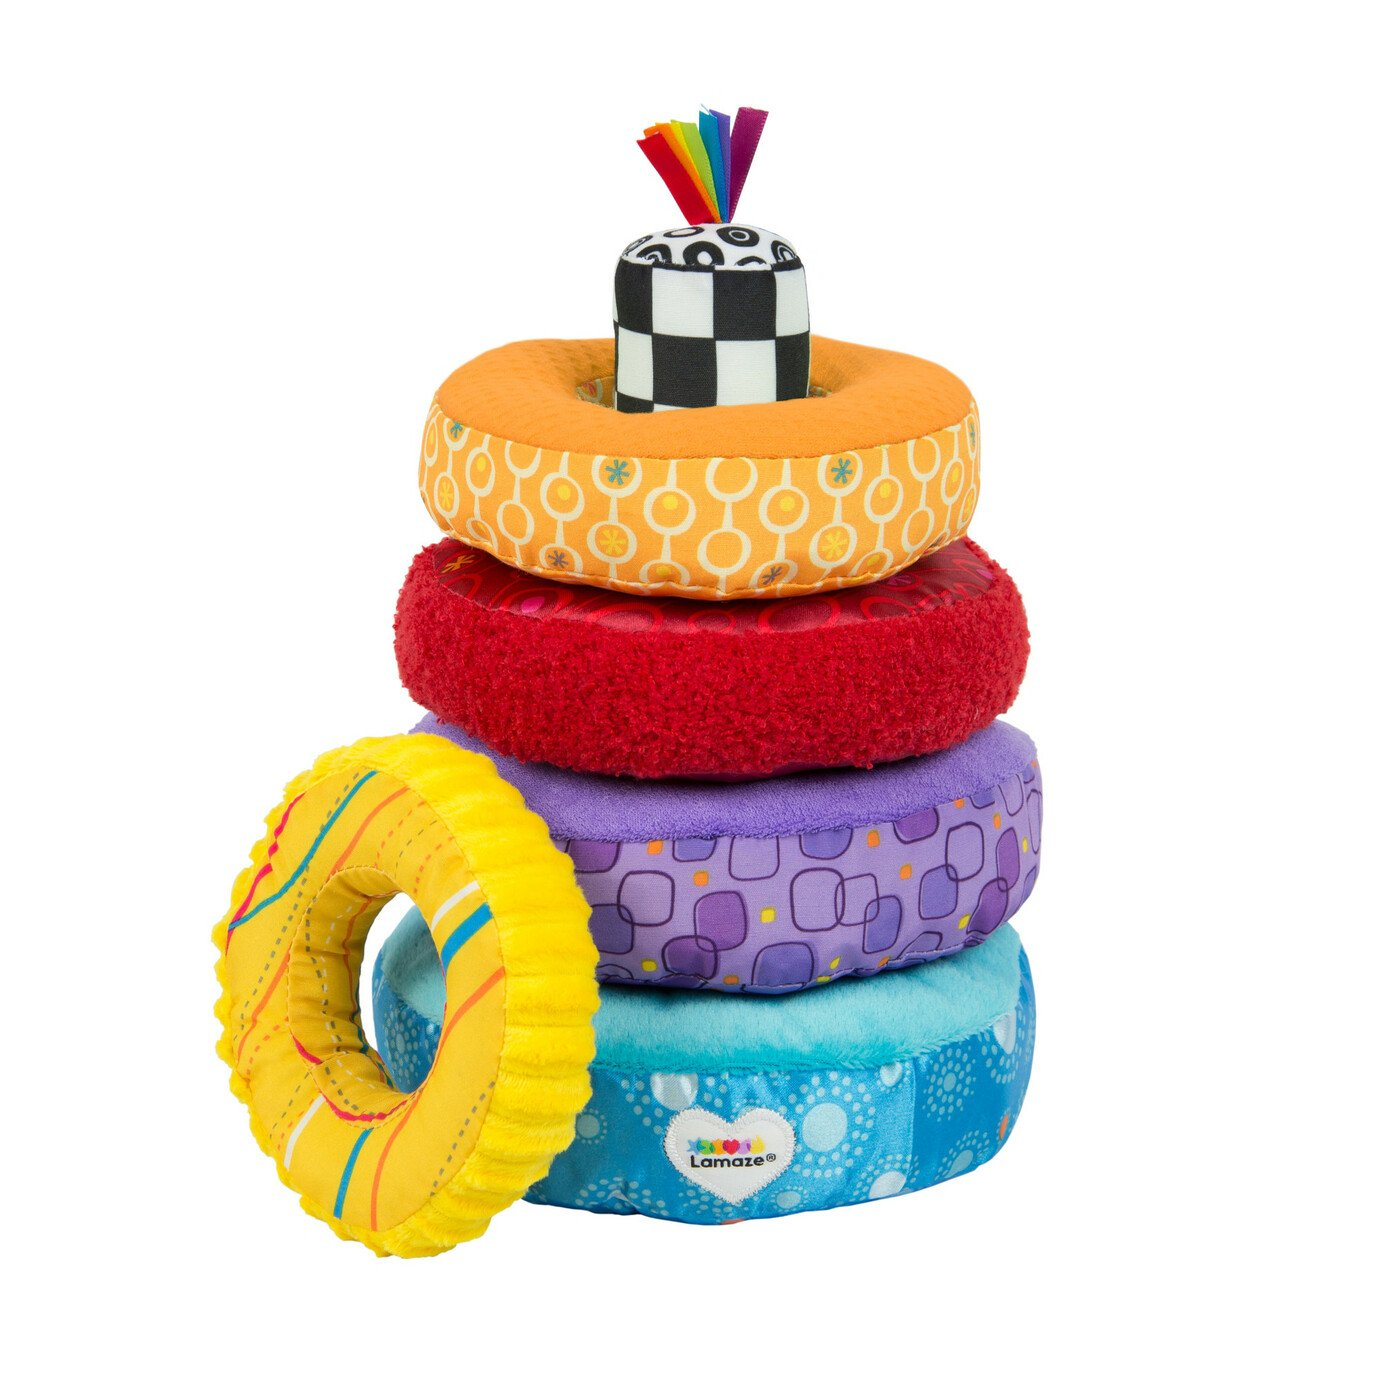 Lamaze Rainbow Stacking Rings Developmental Toy £17.00 @ Argos